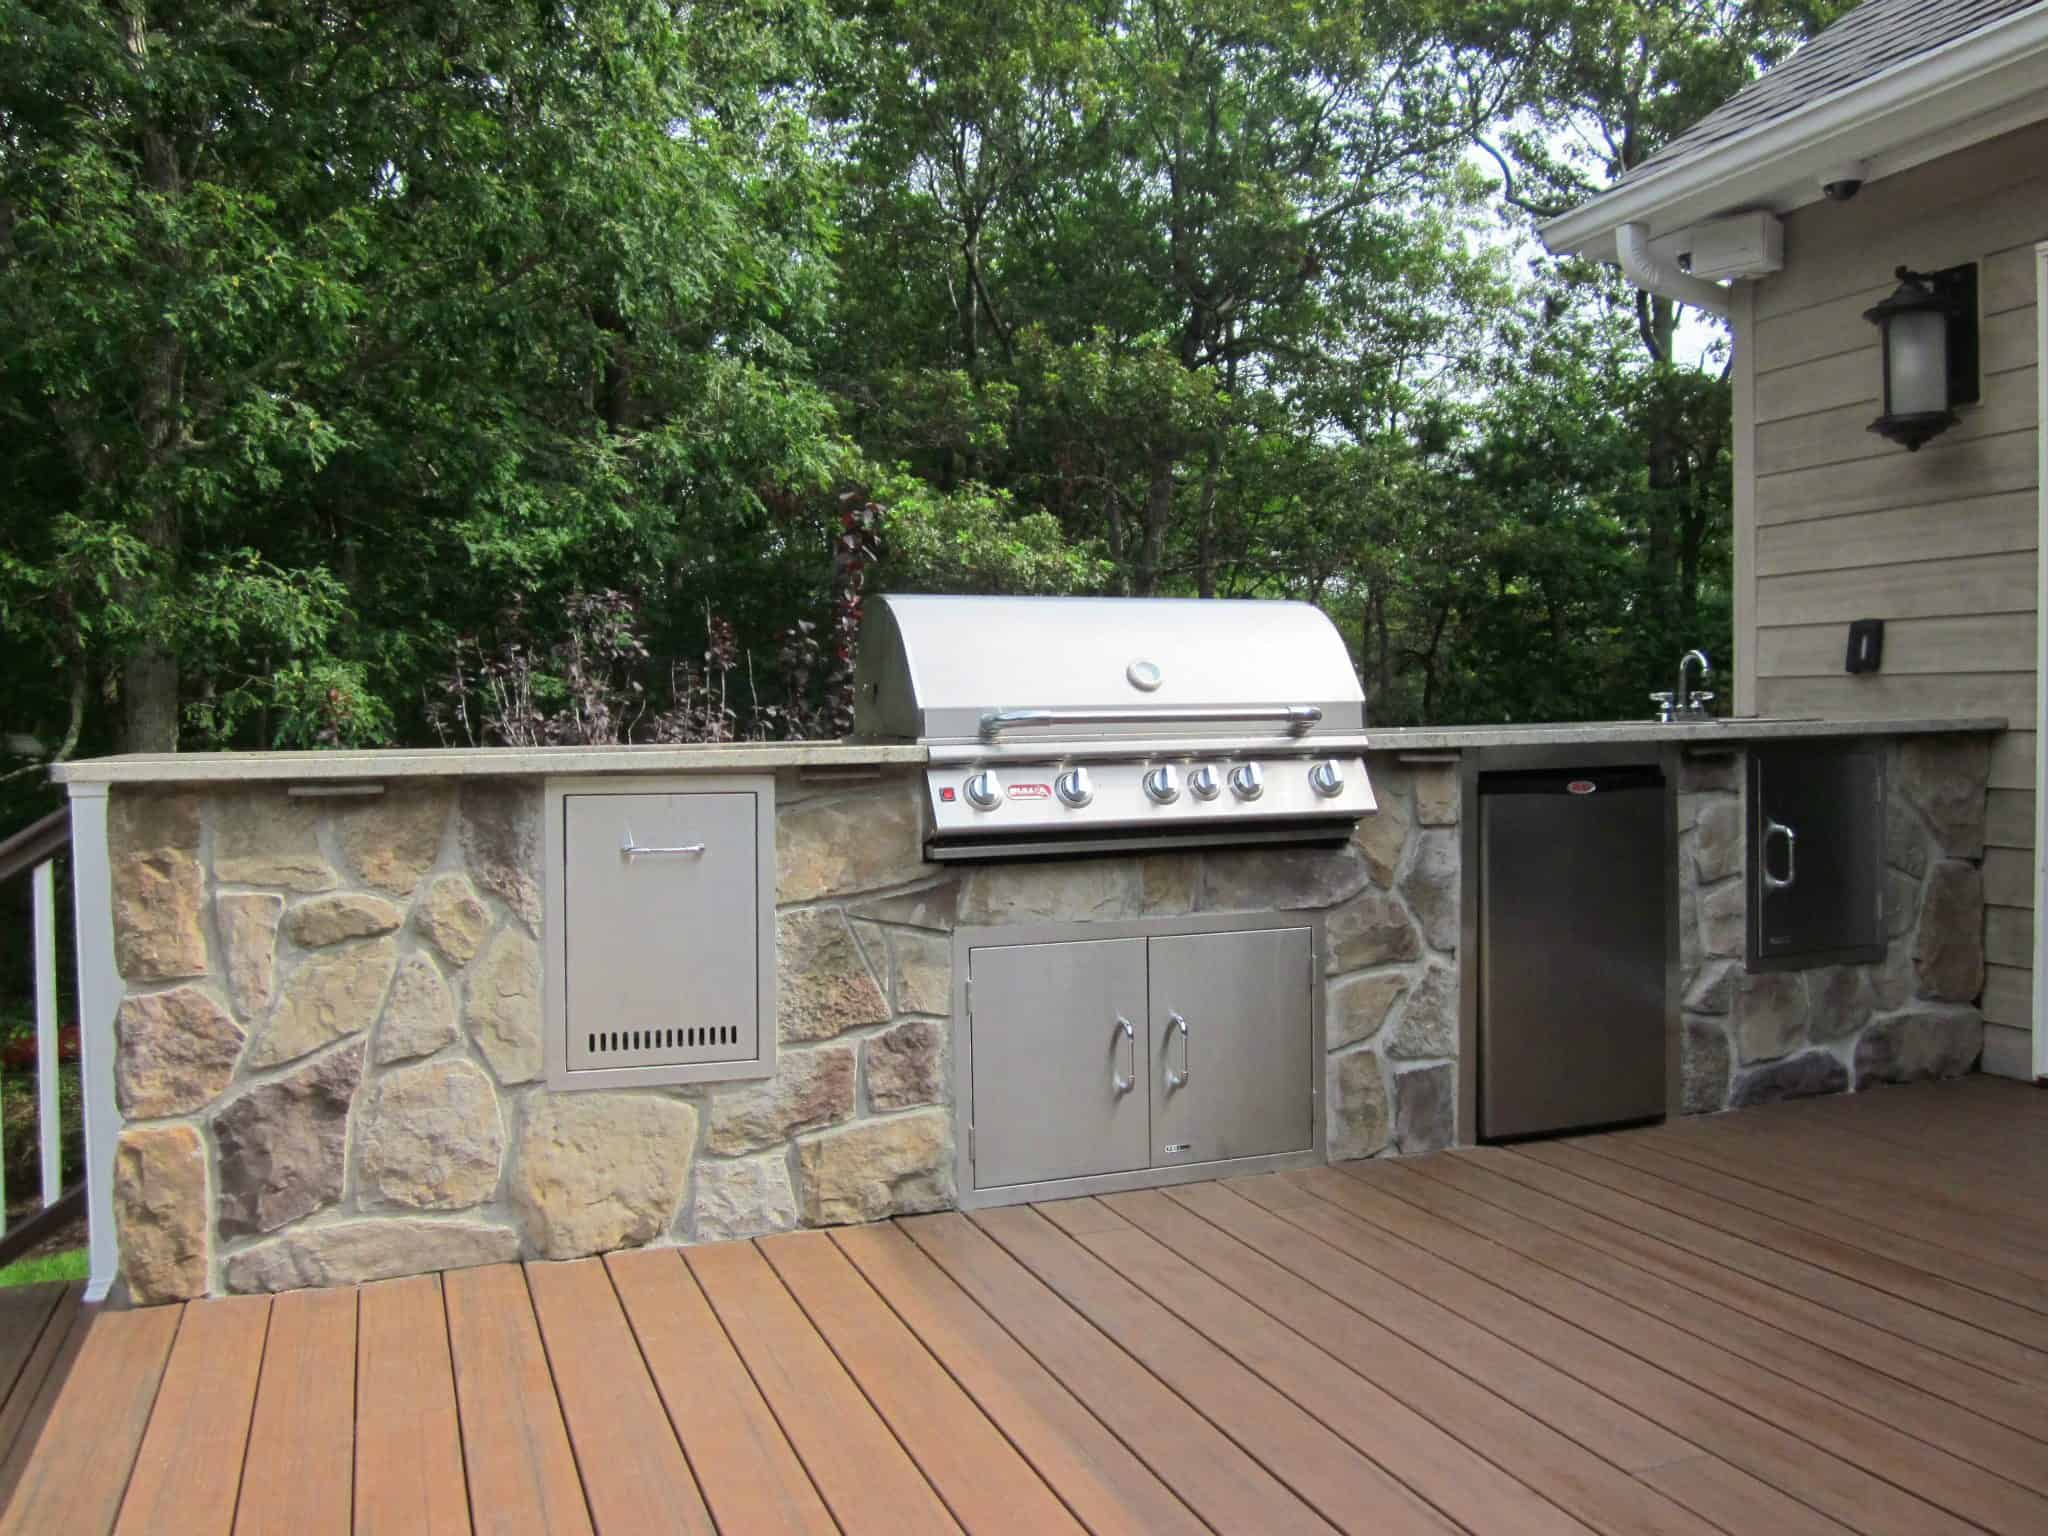 Outdoor kitchen and granite countertop veneered in Dressed Field Stone - Bucks County - Hampton Bays, Long Island NY